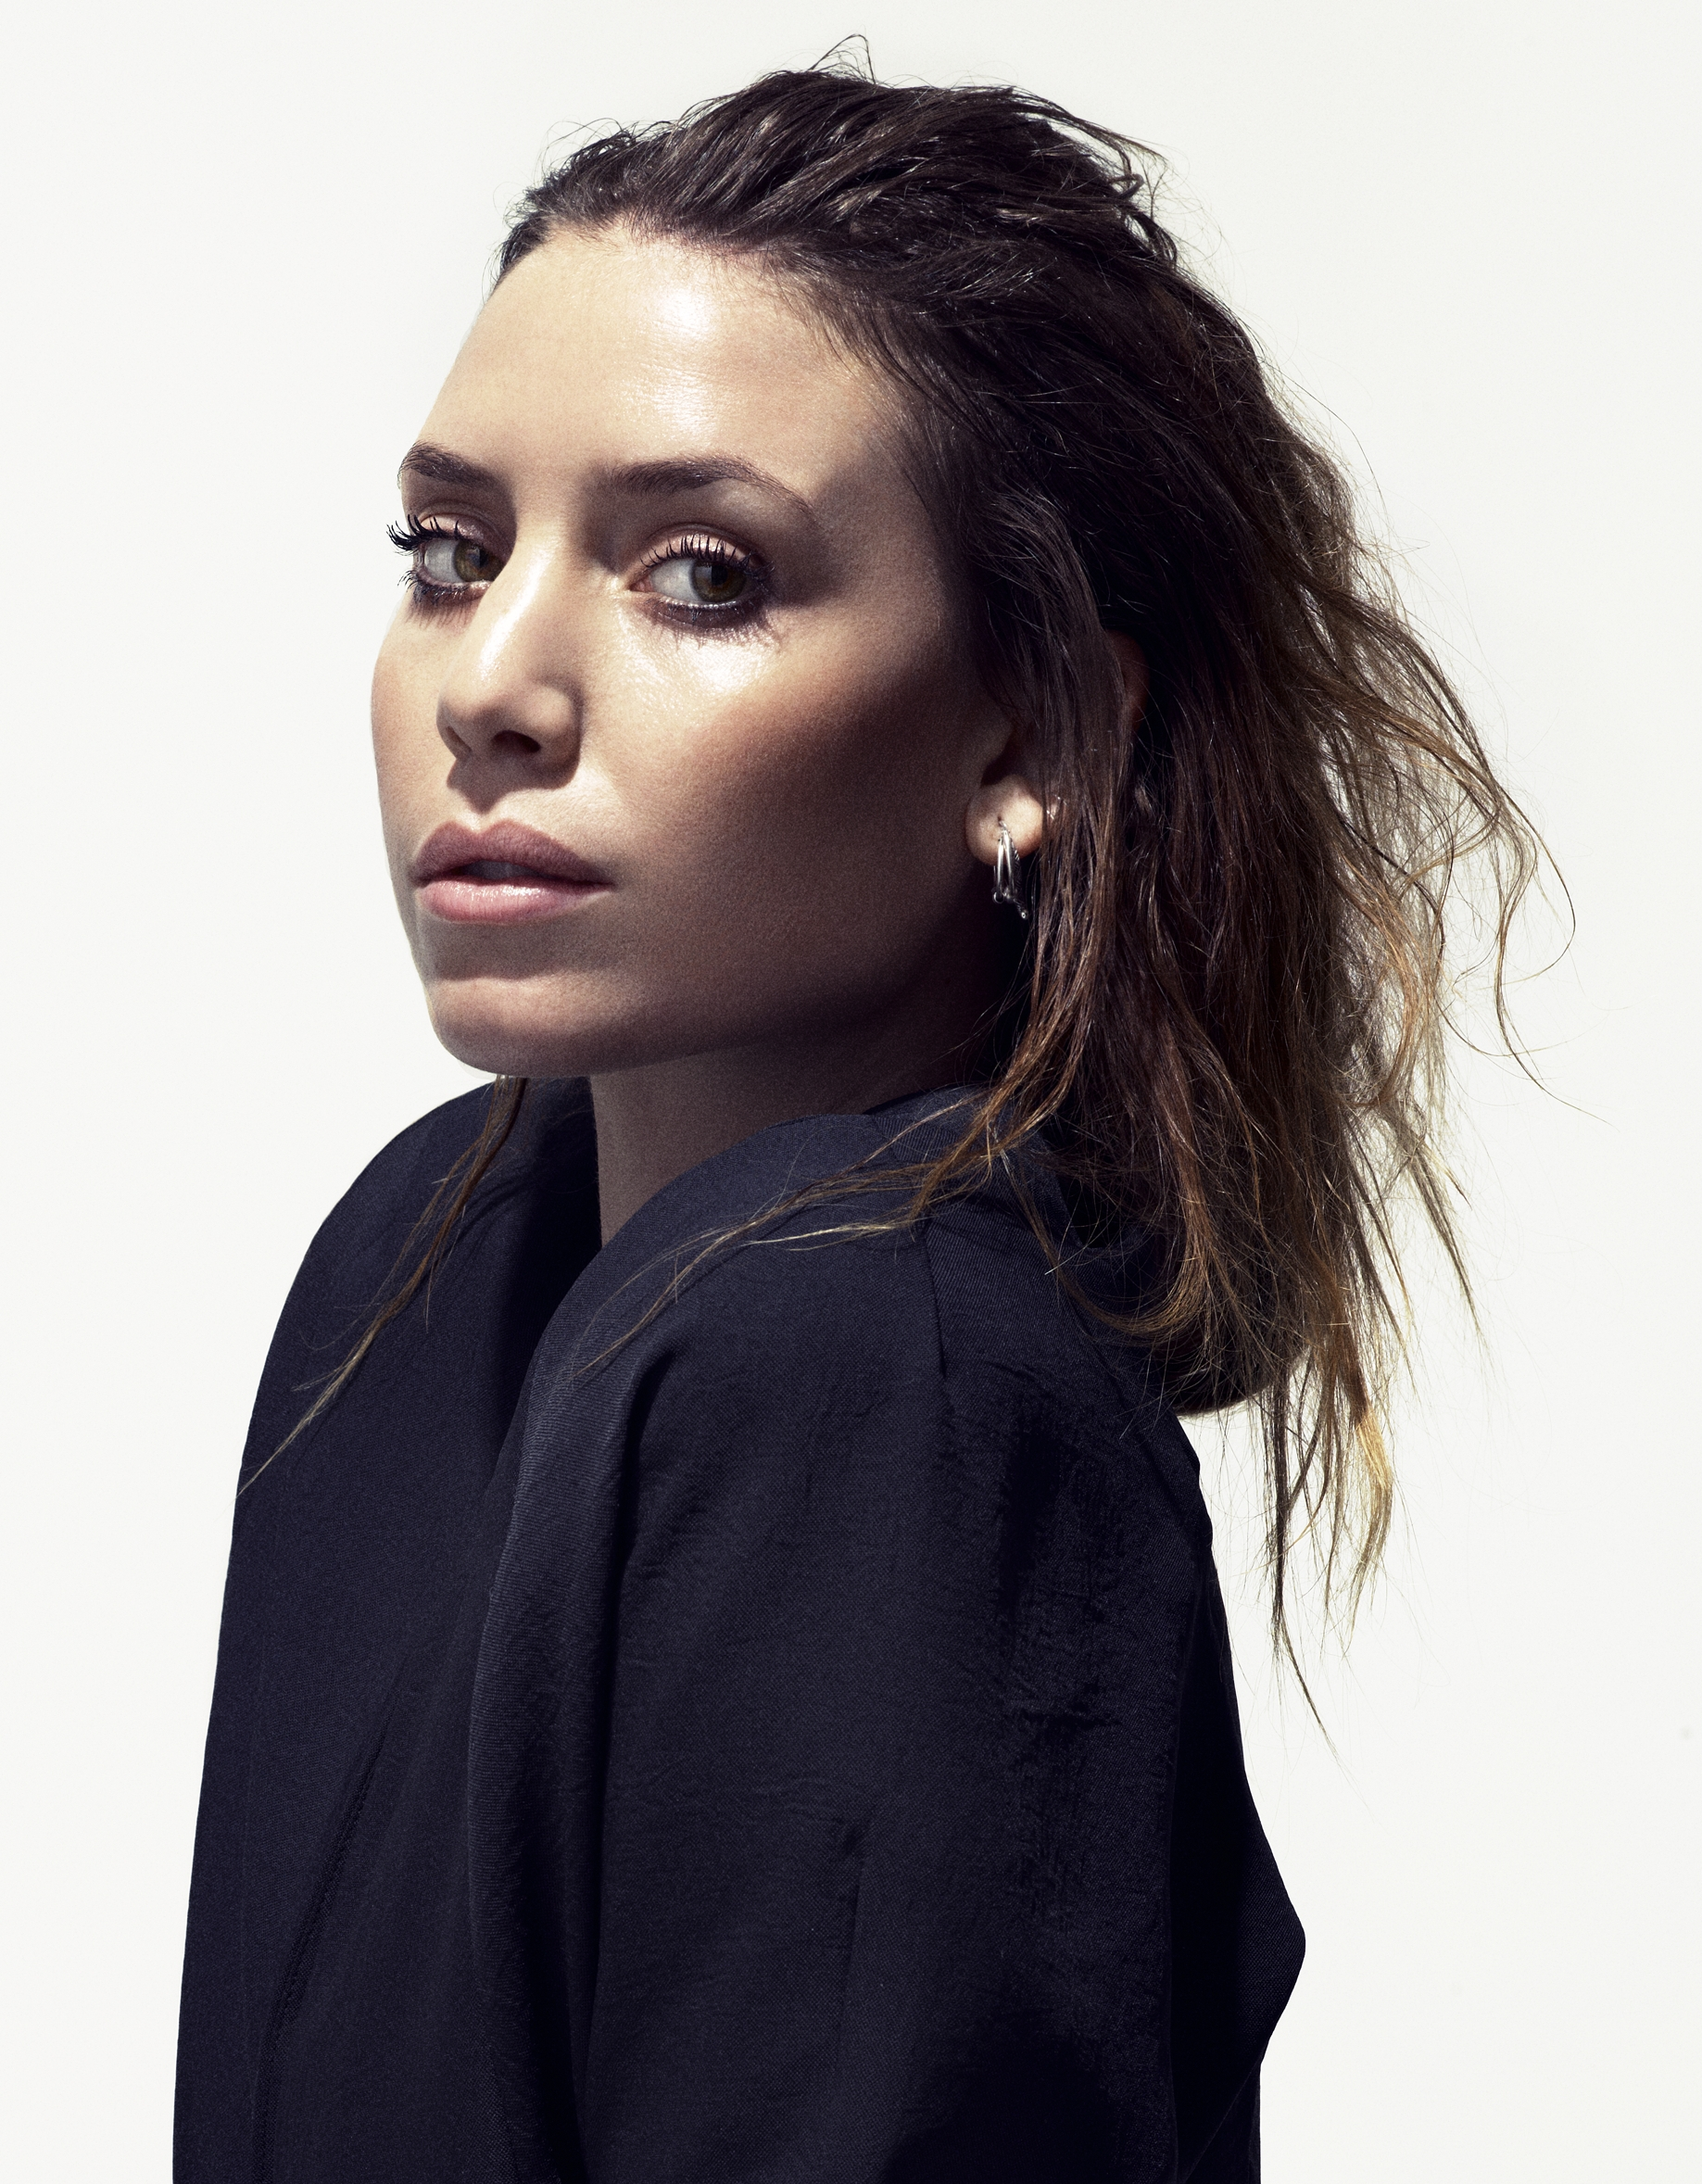 The 32-year old daughter of father Johan Zachrisson and mother Kärsti Stiege Lykke Li in 2018 photo. Lykke Li earned a  million dollar salary - leaving the net worth at 10 million in 2018